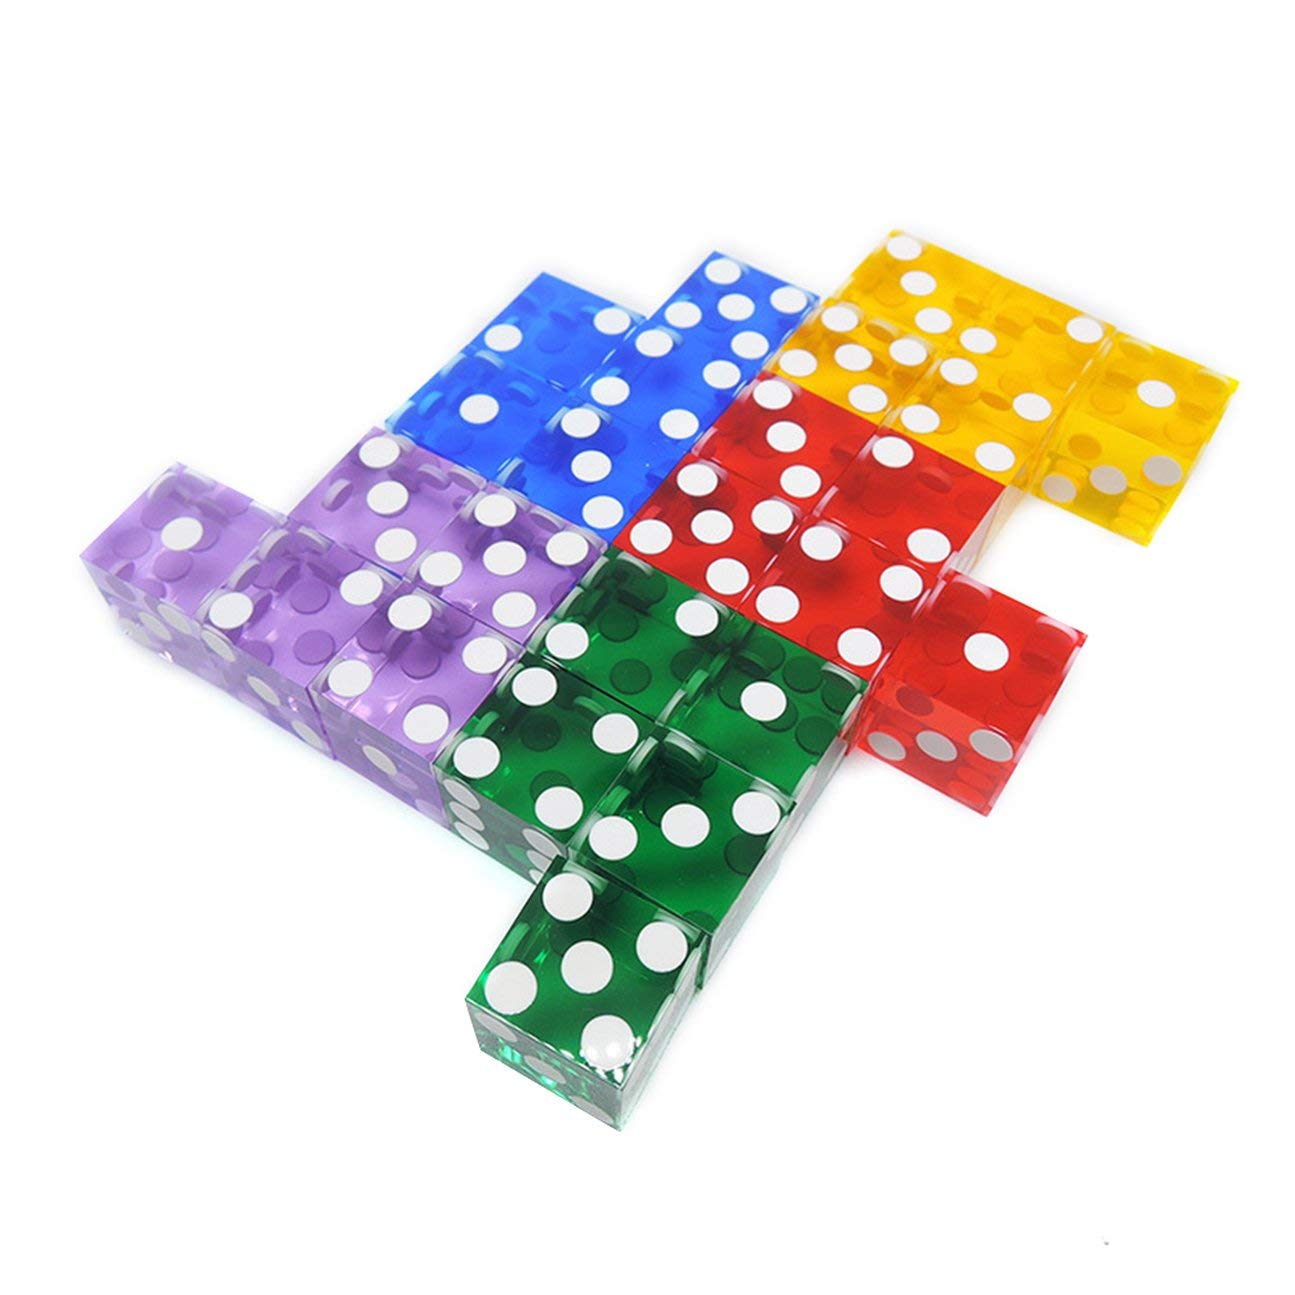 COLOR:Blue HIPENGYANBAIHU 5 Pieces Top Grade 19mm Casino Dice With The Edges And Serial Numbers Translucent Clear D6 Dice Real Dice